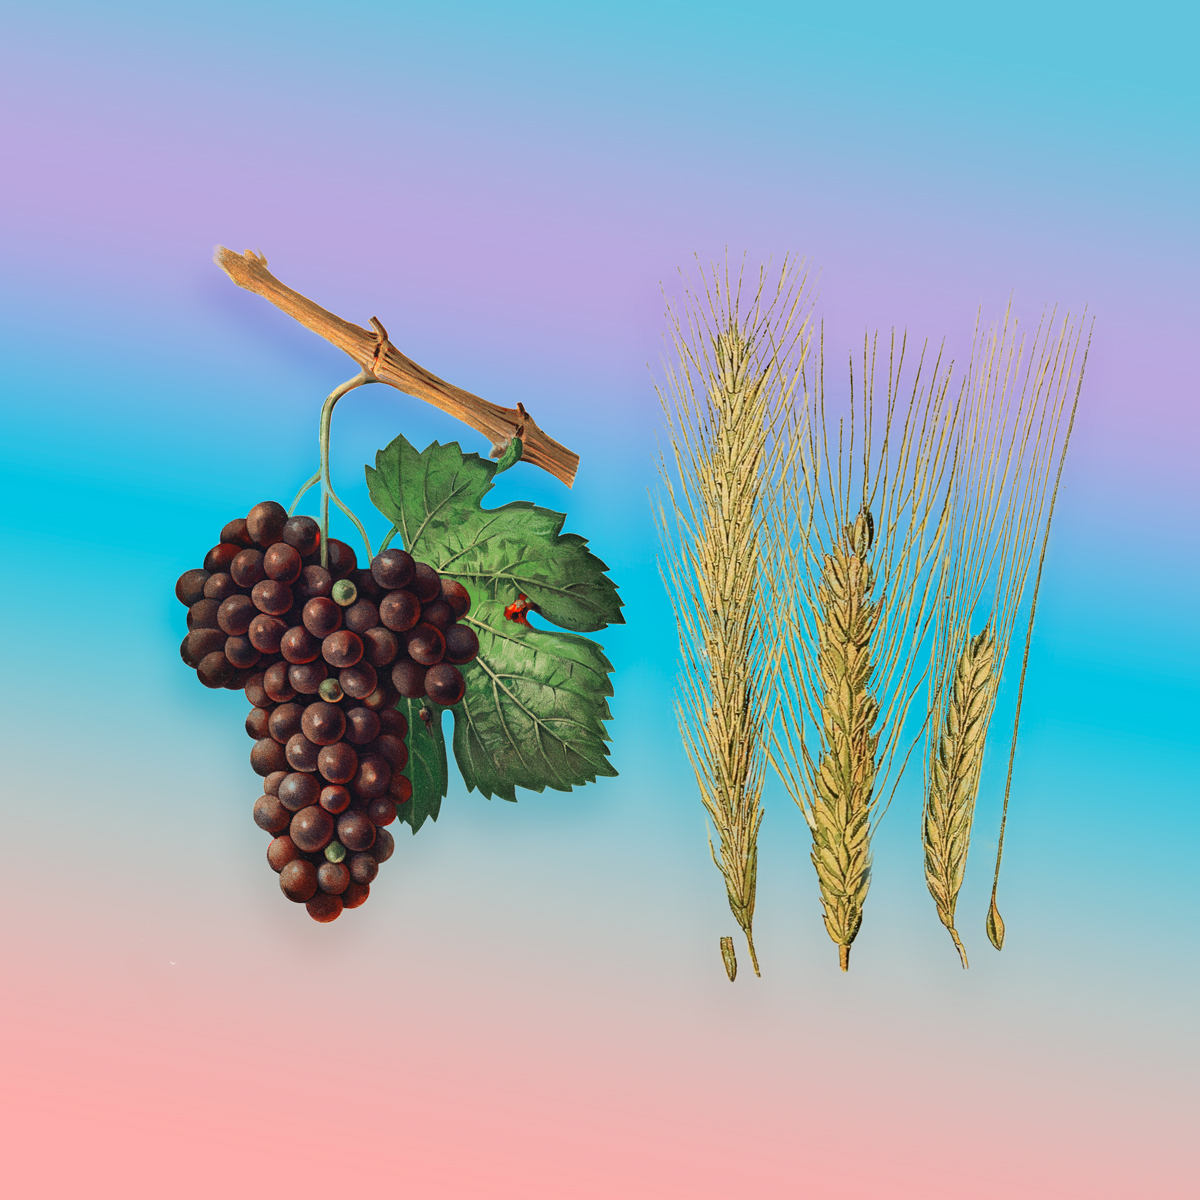 Grapes and Wheat with pastel gradient